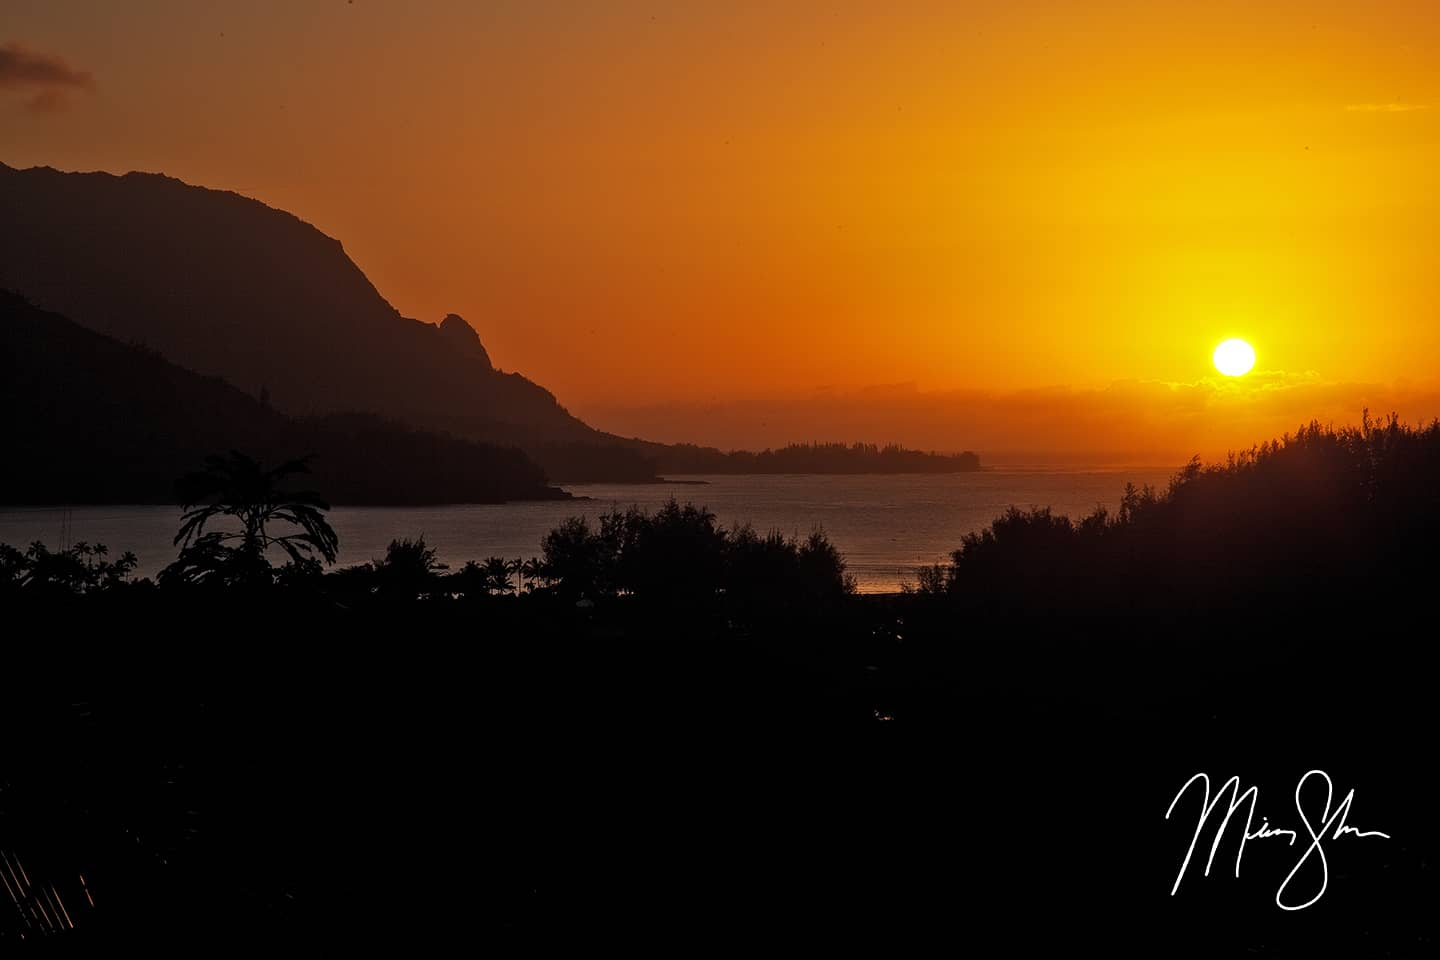 Open edition fine art print of Hanalei Bay Sunset from Mickey Shannon Photography. Location: Hanalei, Kauai, Hawaii